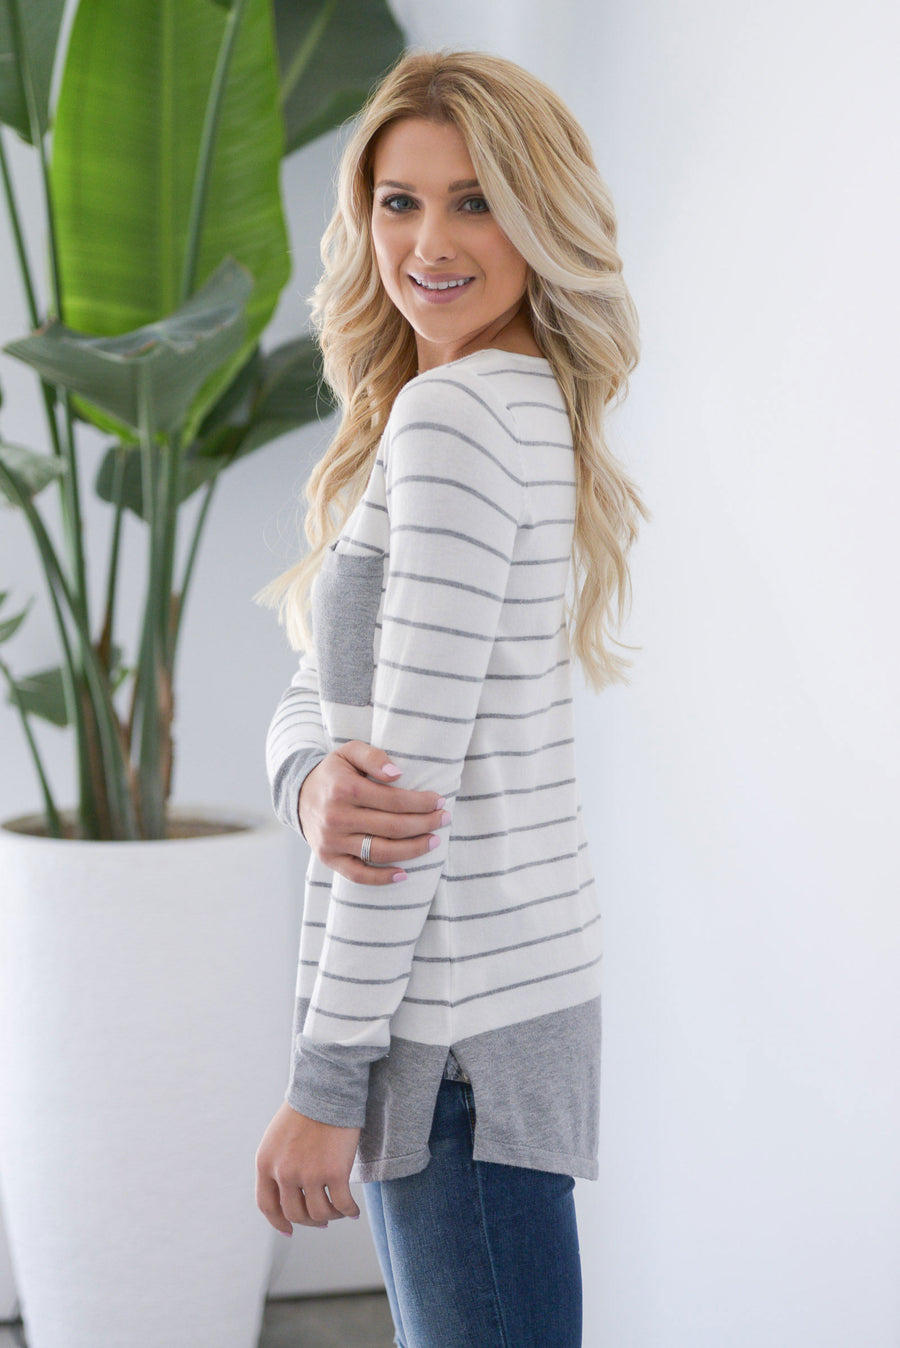 In My Comfort Zone Top - Grey/Ivory women's striped print sweater top, chest pocket, round neckline, button details, side slits at hem, soft stretchy material, closet candy boutique 1